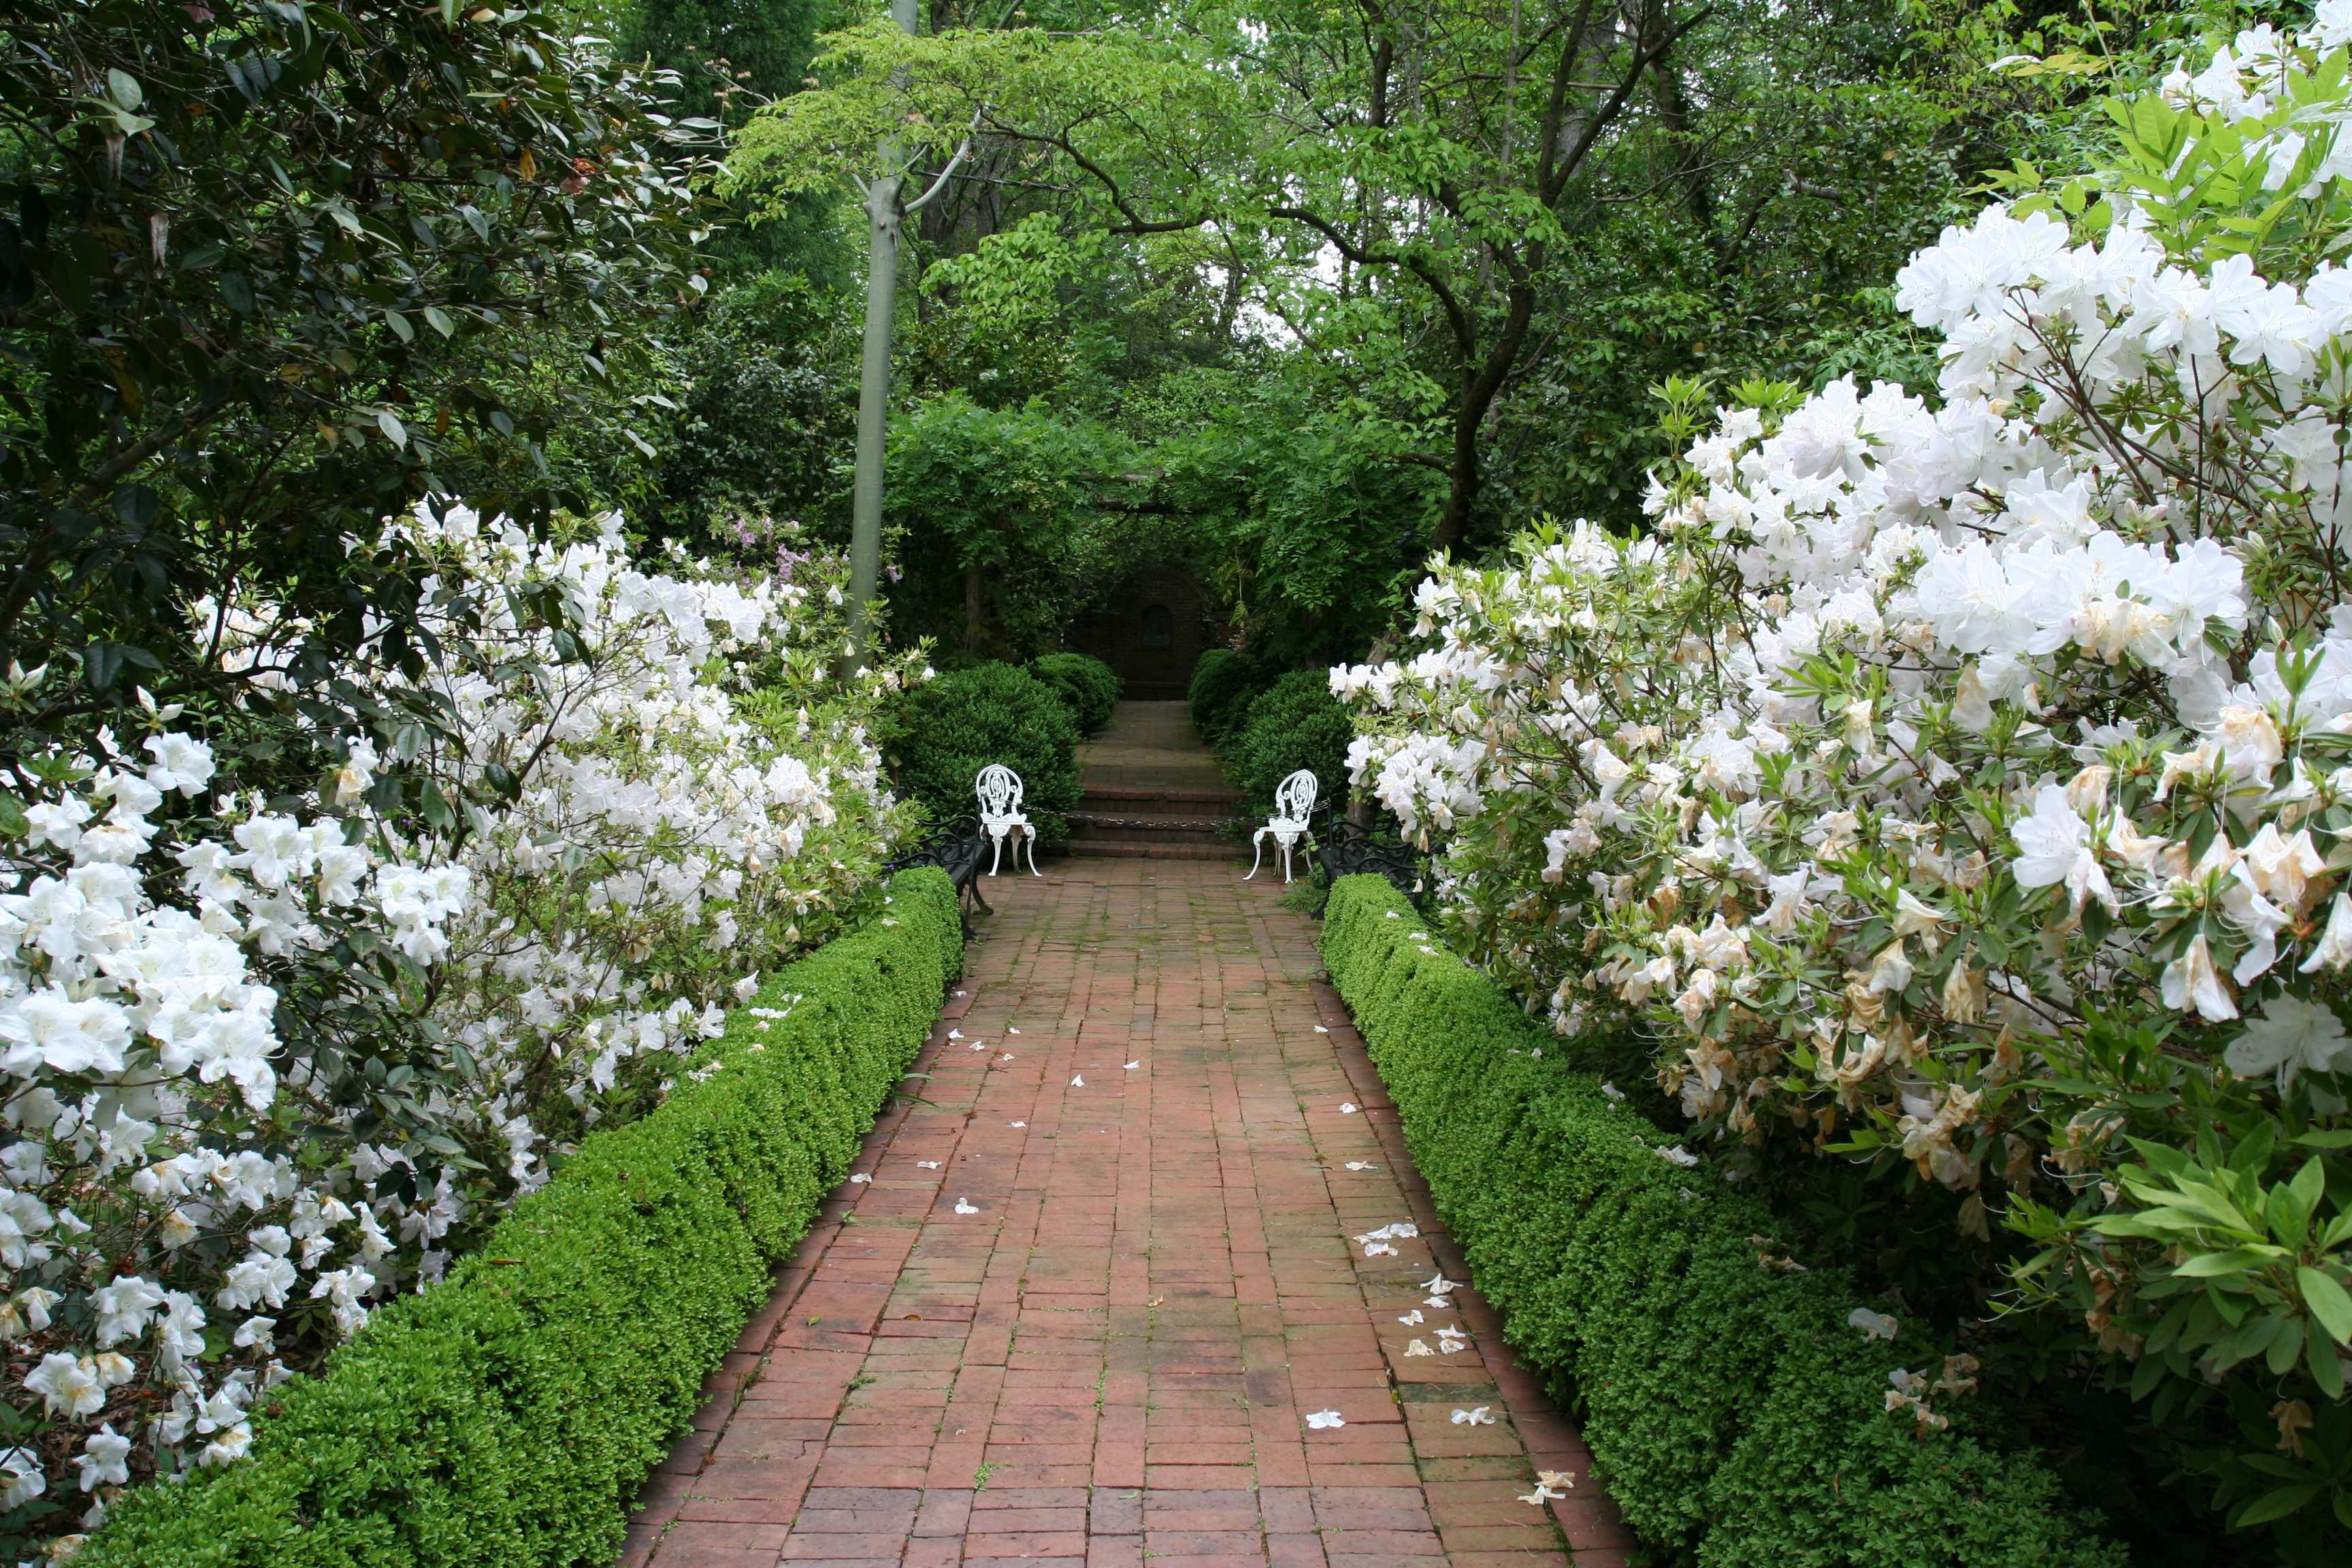 Wing haven share charlotte - Wing haven gardens and bird sanctuary ...